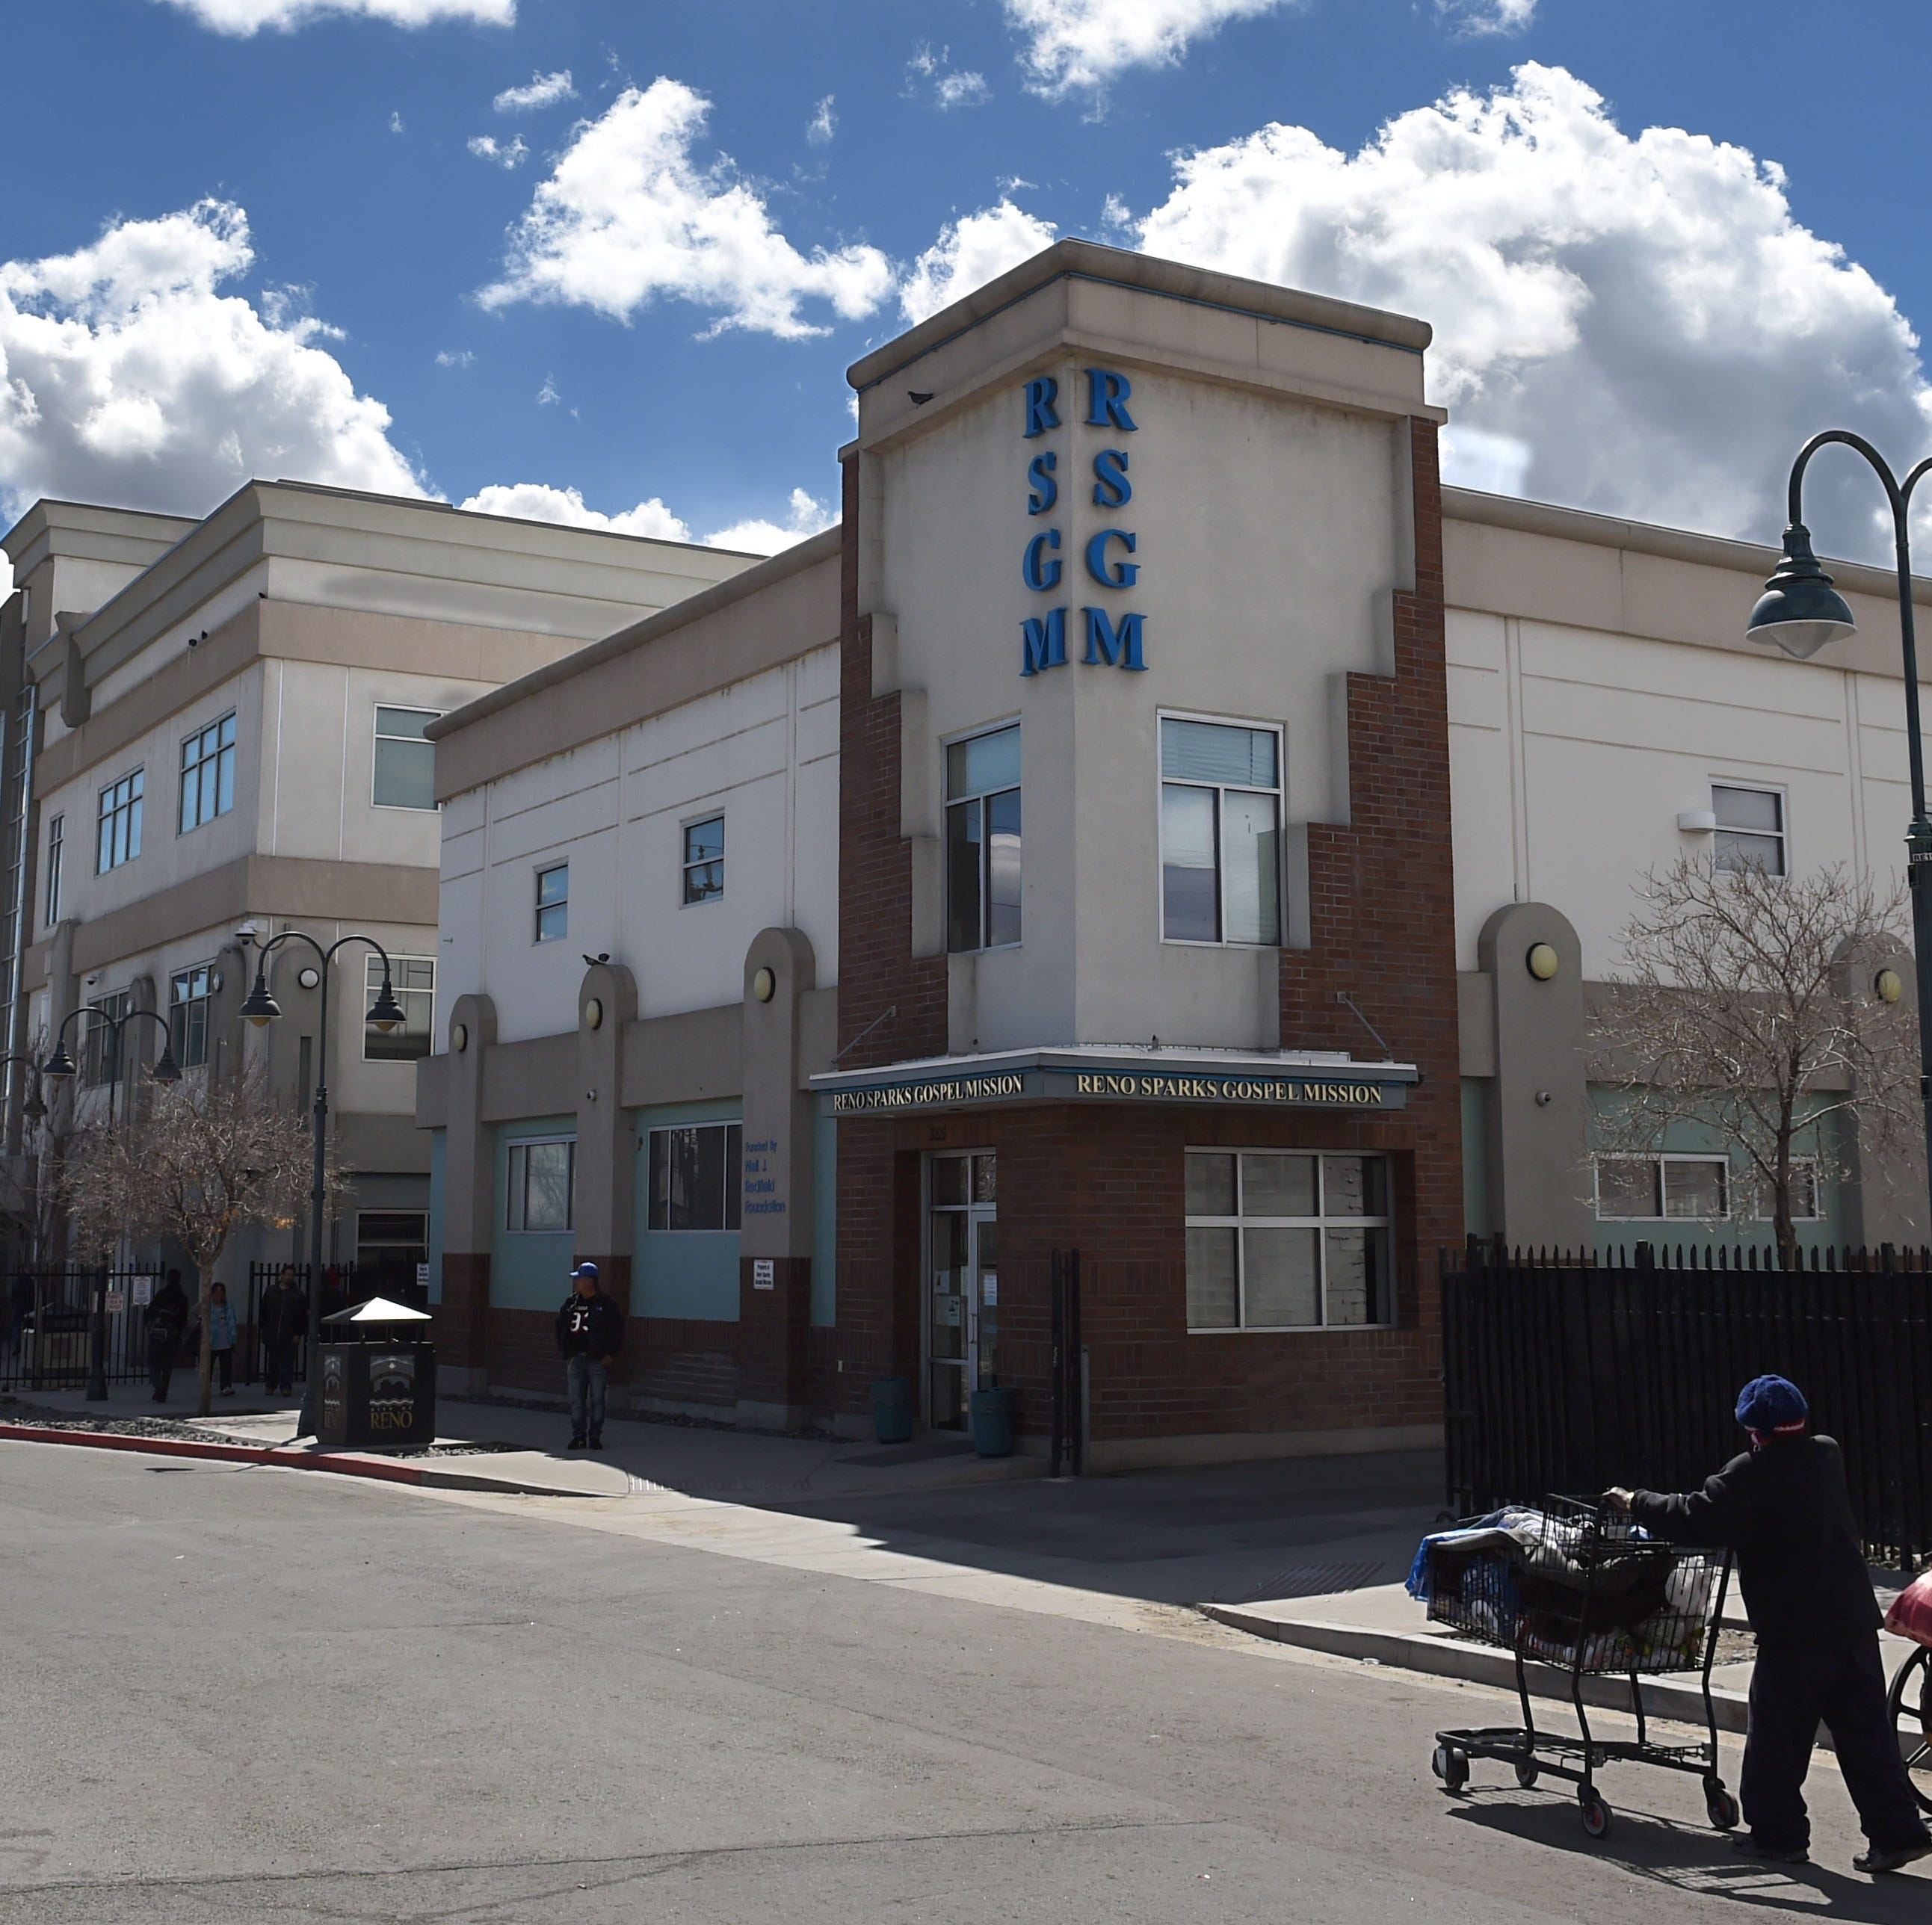 Man dies on Reno homeless shelter roof, goes undiscovered for days